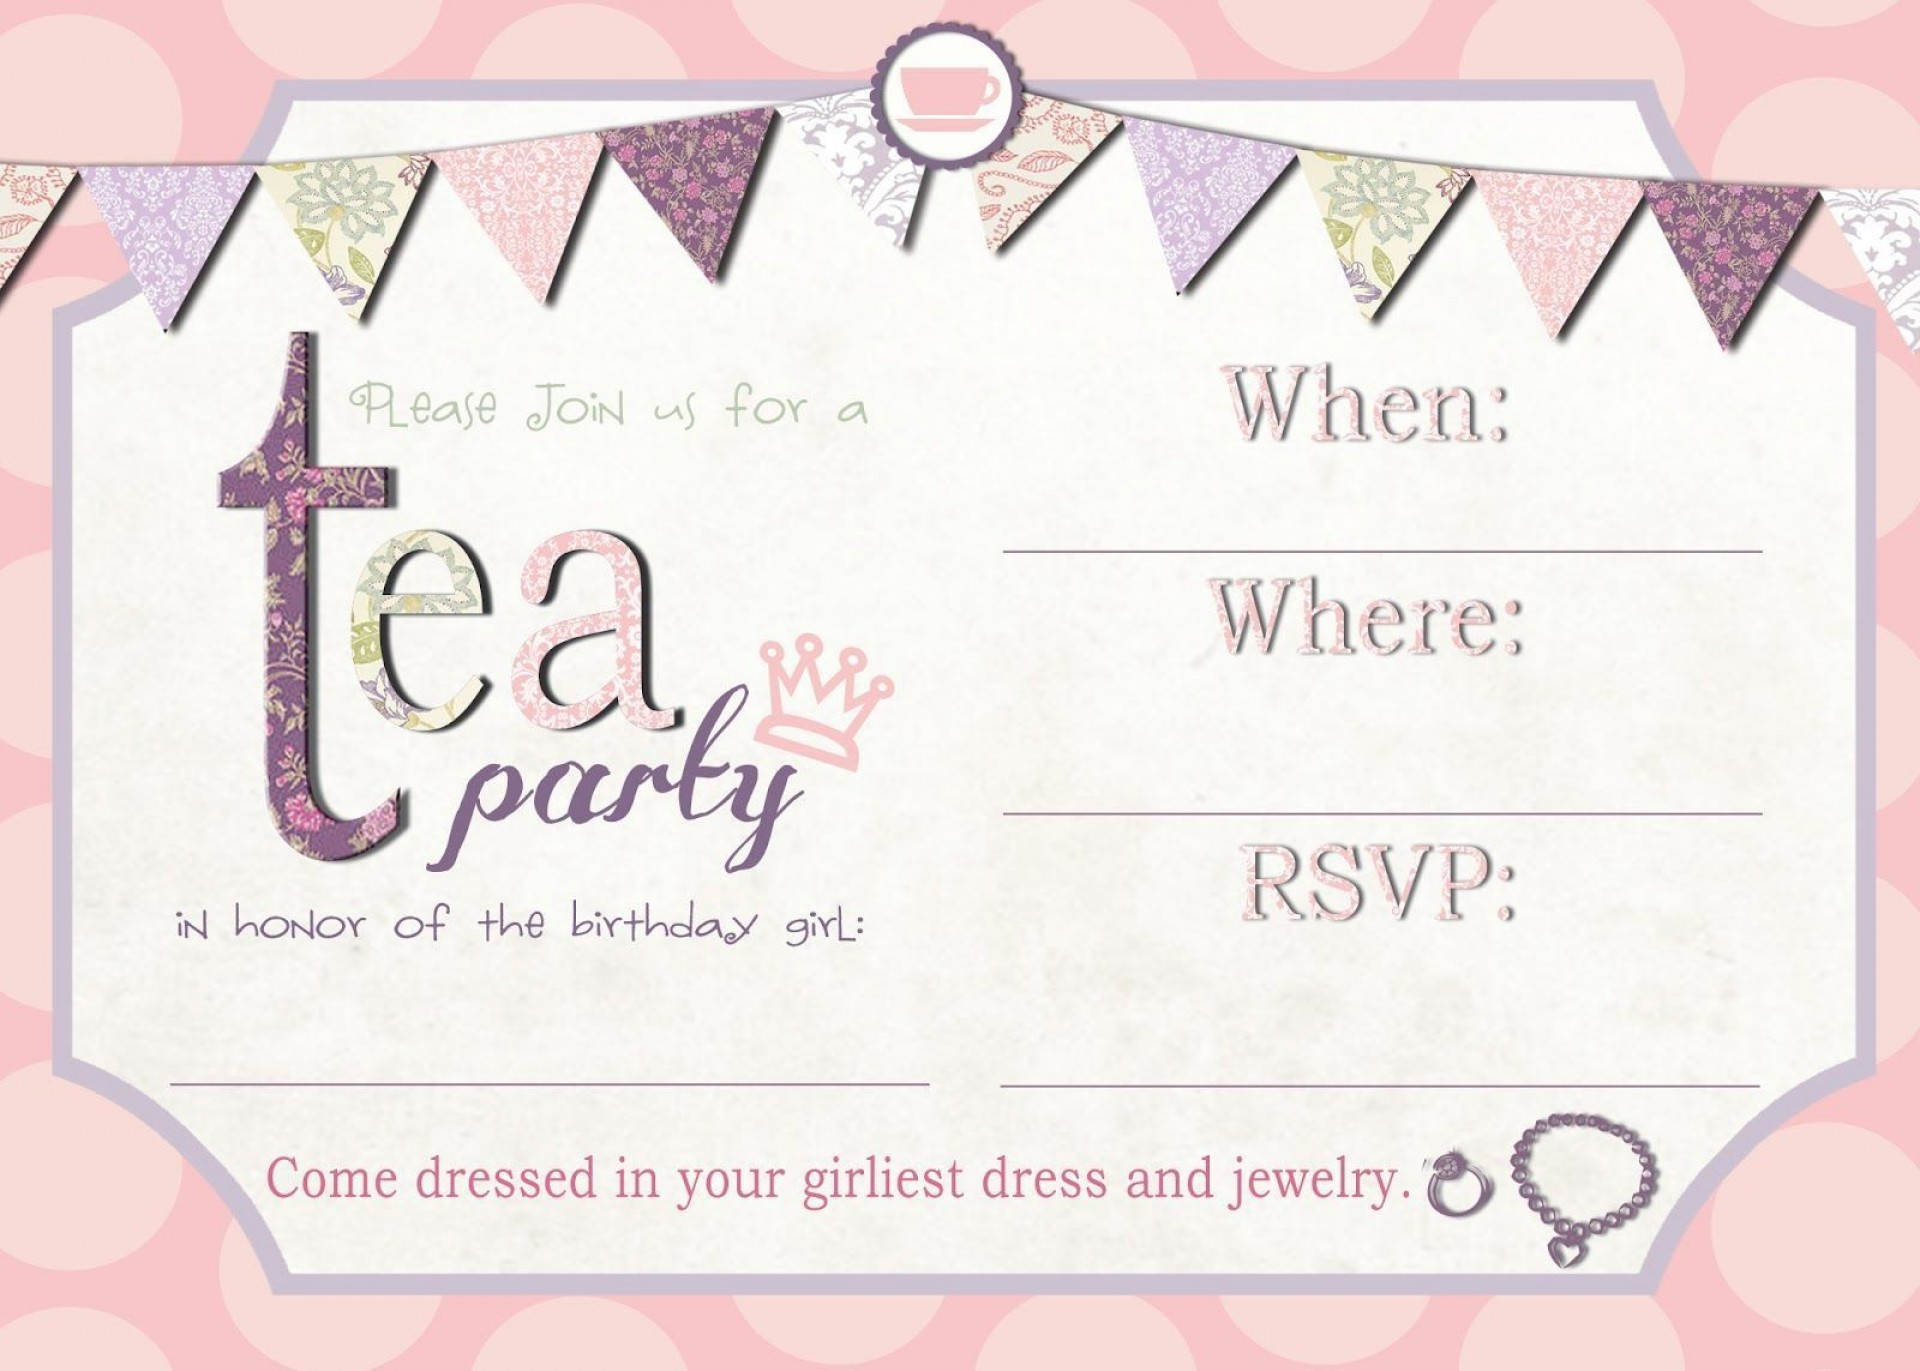 001 Awful Tea Party Invitation Template High Definition  Card Victorian Wording For Bridal Shower1920